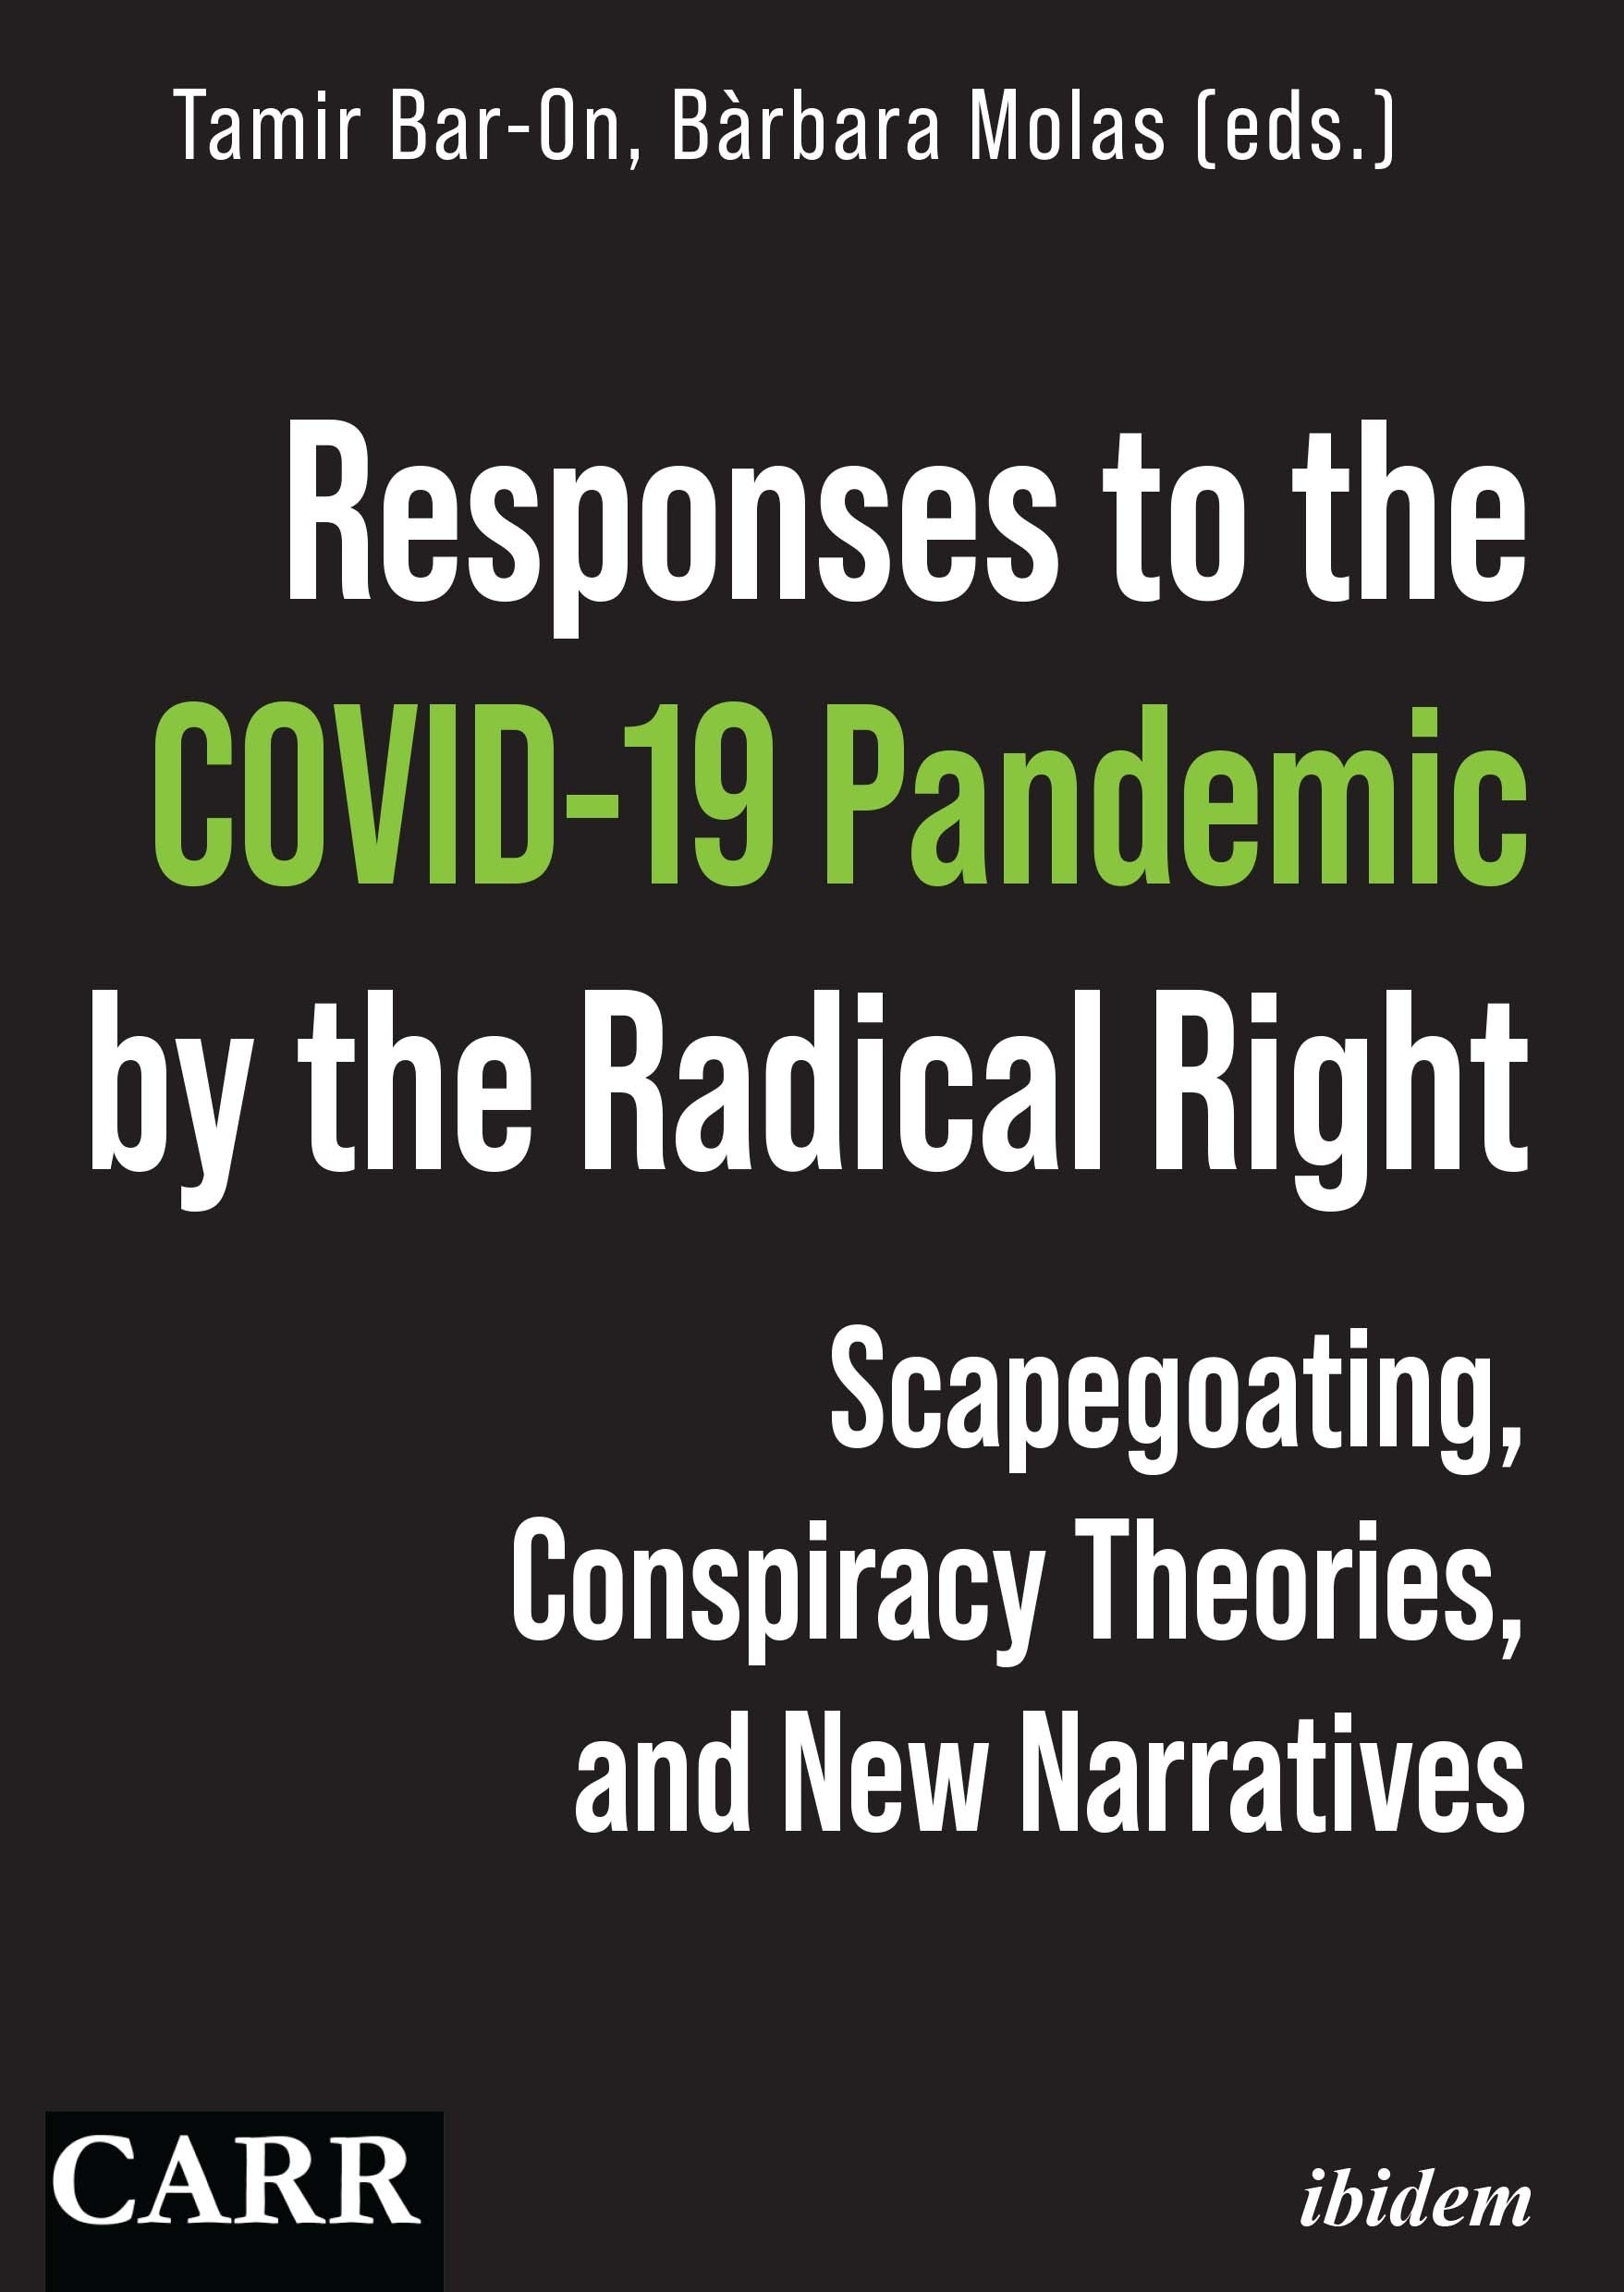 Responses to the COVID-19 Pandemic by the Radical Right